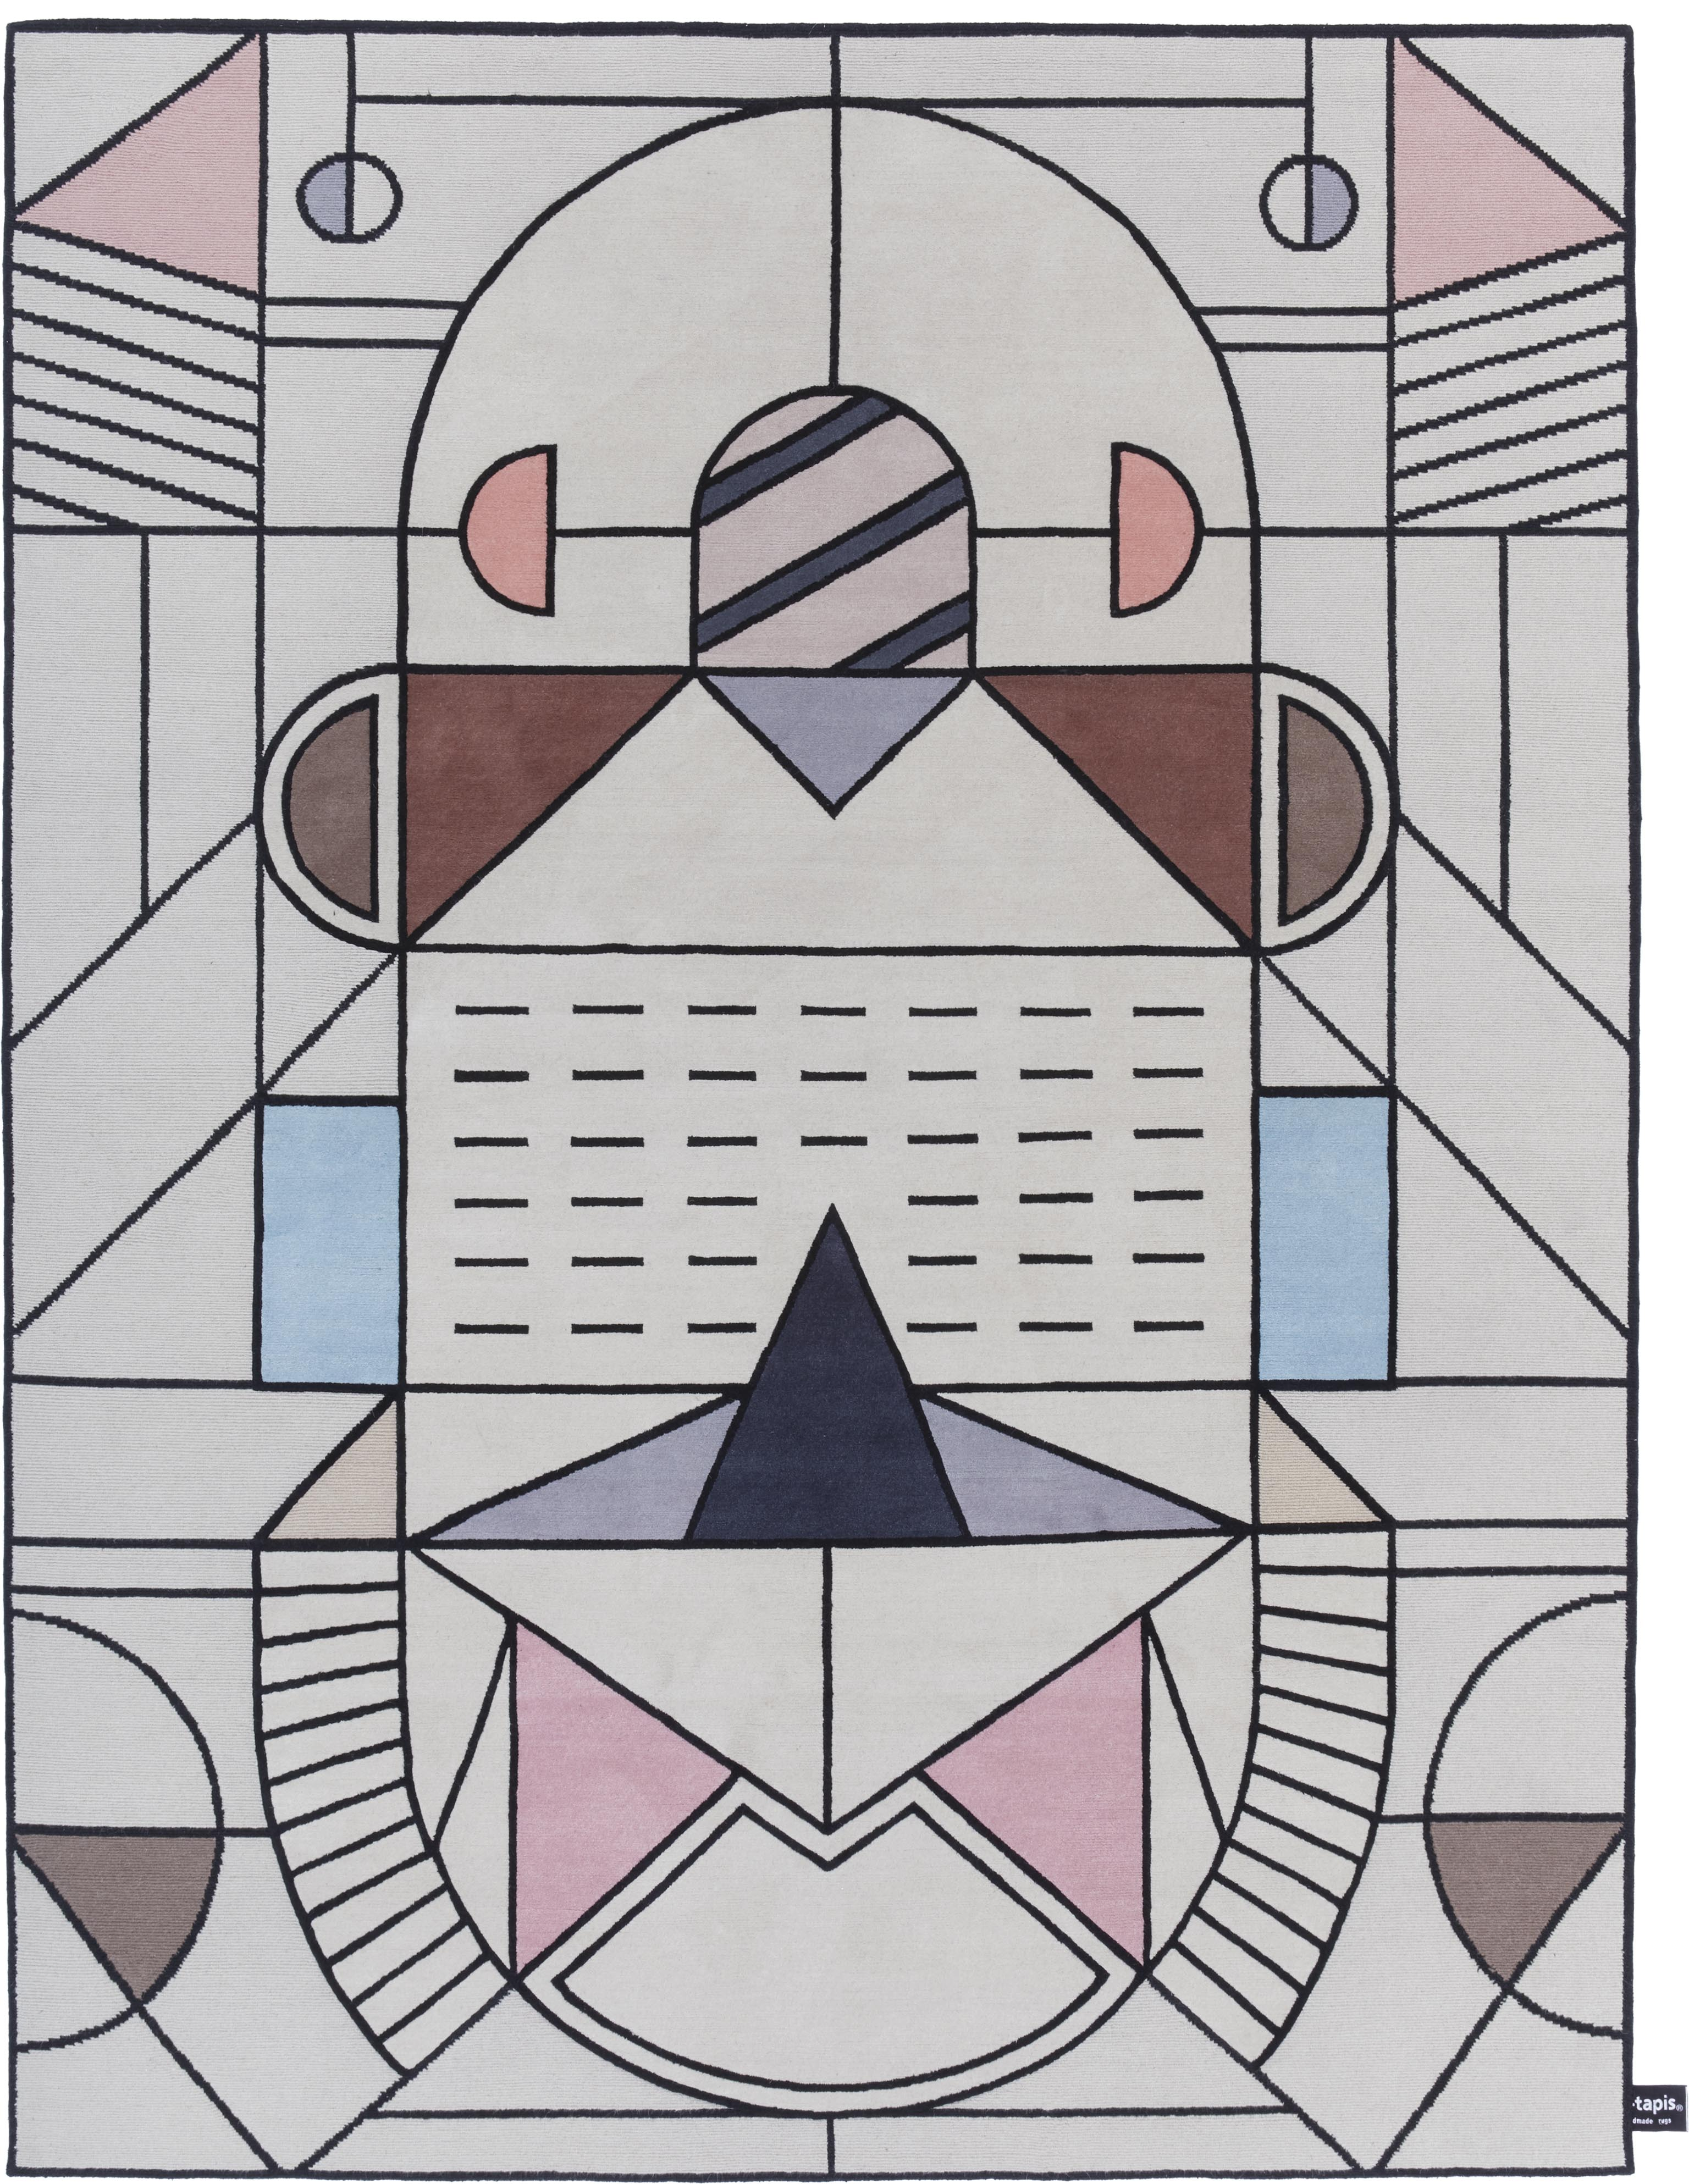 'Cartesio Outline' by Elena Salmistraro for cc-tapis. | Image courtesy of cc-tapis.